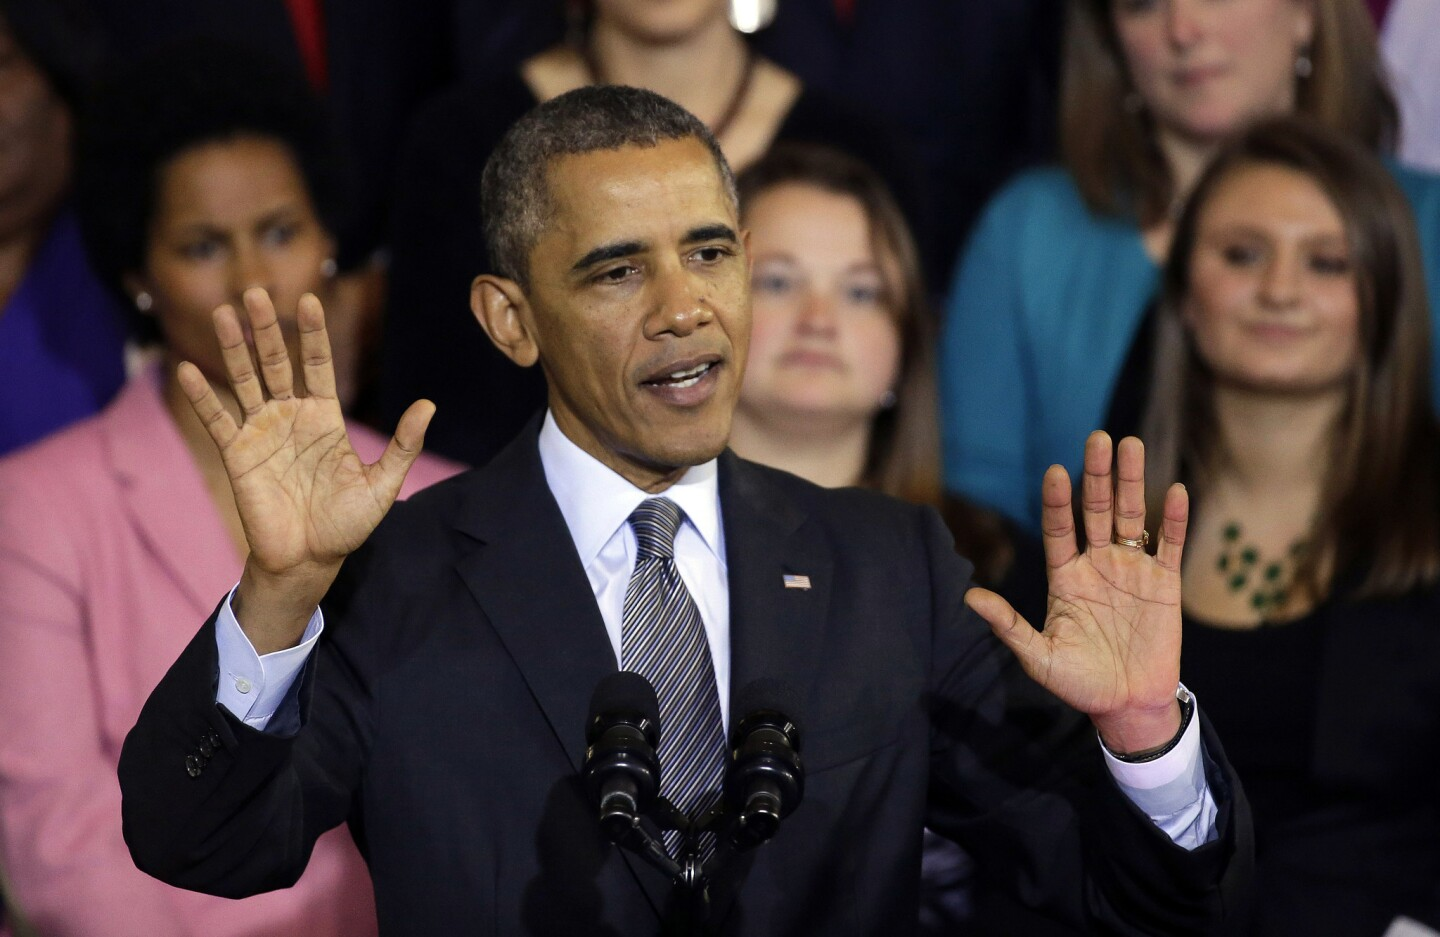 """In a televised interview last month, President Obama apologized for telling the public, repeatedly and without qualification, that """"if you like your healthcare plan, you can keep your healthcare plan"""" — even though the healthcare reform law he championed phased out plans that didn't meet an exacting new set of standards. He stopped short of admitting that he'd done something wrong, though, which left some of the people whose policies were canceled fuming. """"I am sorry that they are finding themselves in this situation based on assurances they got from me,"""" he told NBC News. Wait, what? People are """"finding themselves"""" without coverage not because of some bogus promise Obama made but because of the law he championed. PolitiFact later declared the president's """"you can keep it"""" promise its """"Lie of the Year."""" Above: Obama speaks at Boston's historic Faneuil Hall about the federal healthcare law on Oct. 30. MORE YEAR IN REVIEW: 12 political photos that made us look twice 10 tips for a better life from The Times' Op-Ed pages Kindness in the world of politics? 7 uplifting examples from 2013"""